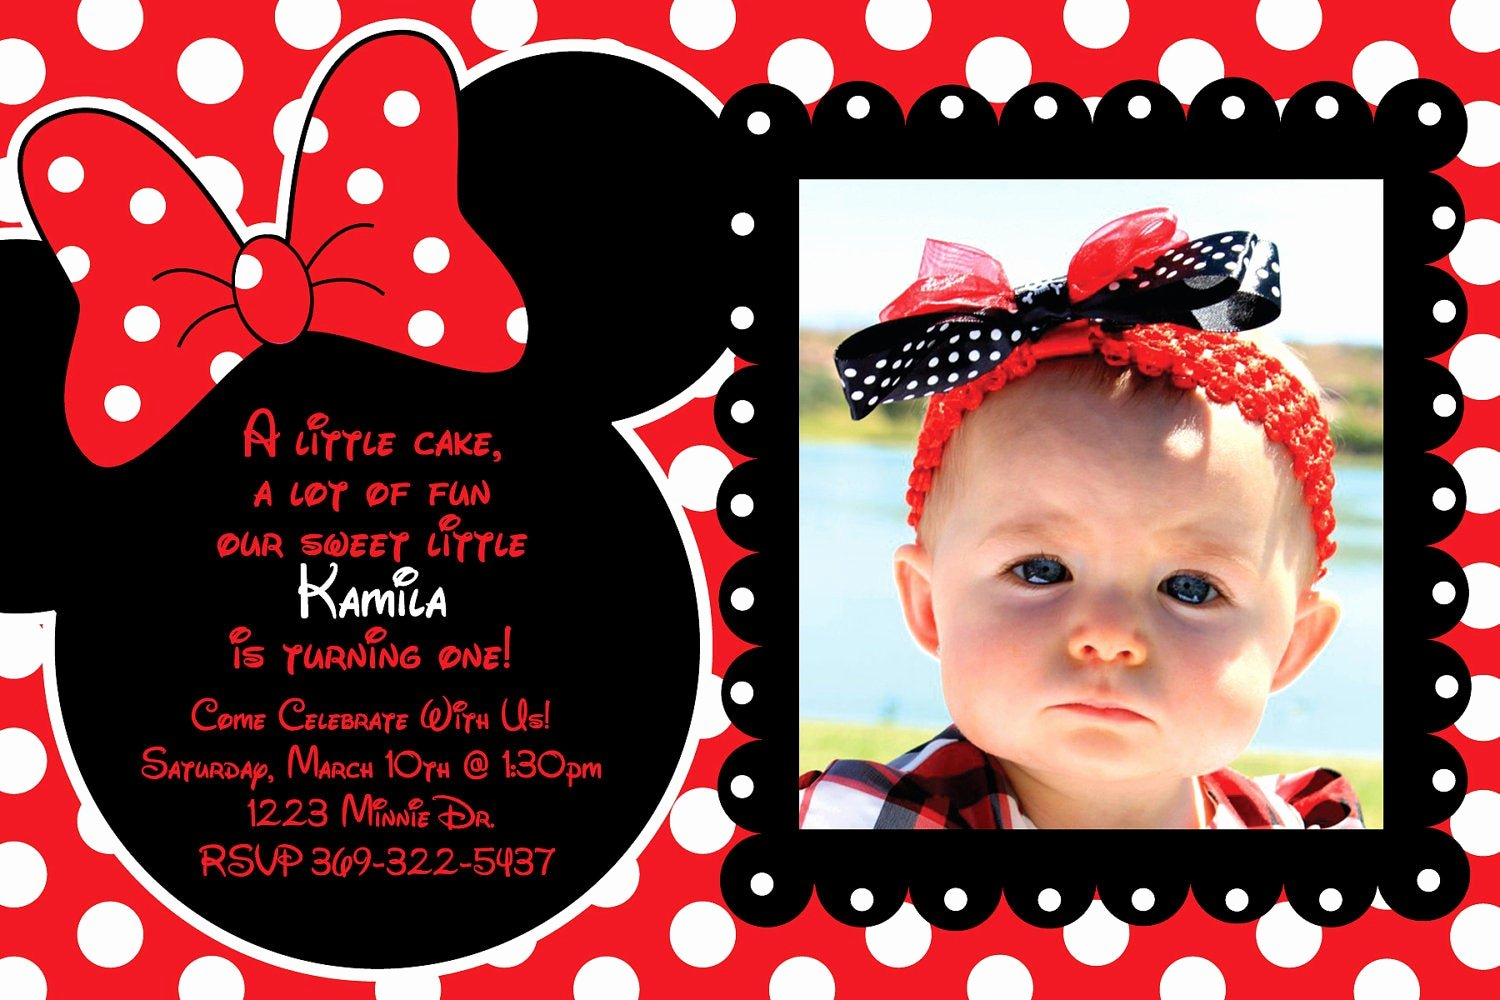 Minnie Mouse Invitation Card Unique Custom Red and Black Polka Dot Minnie Mouse by Heatherscreations11